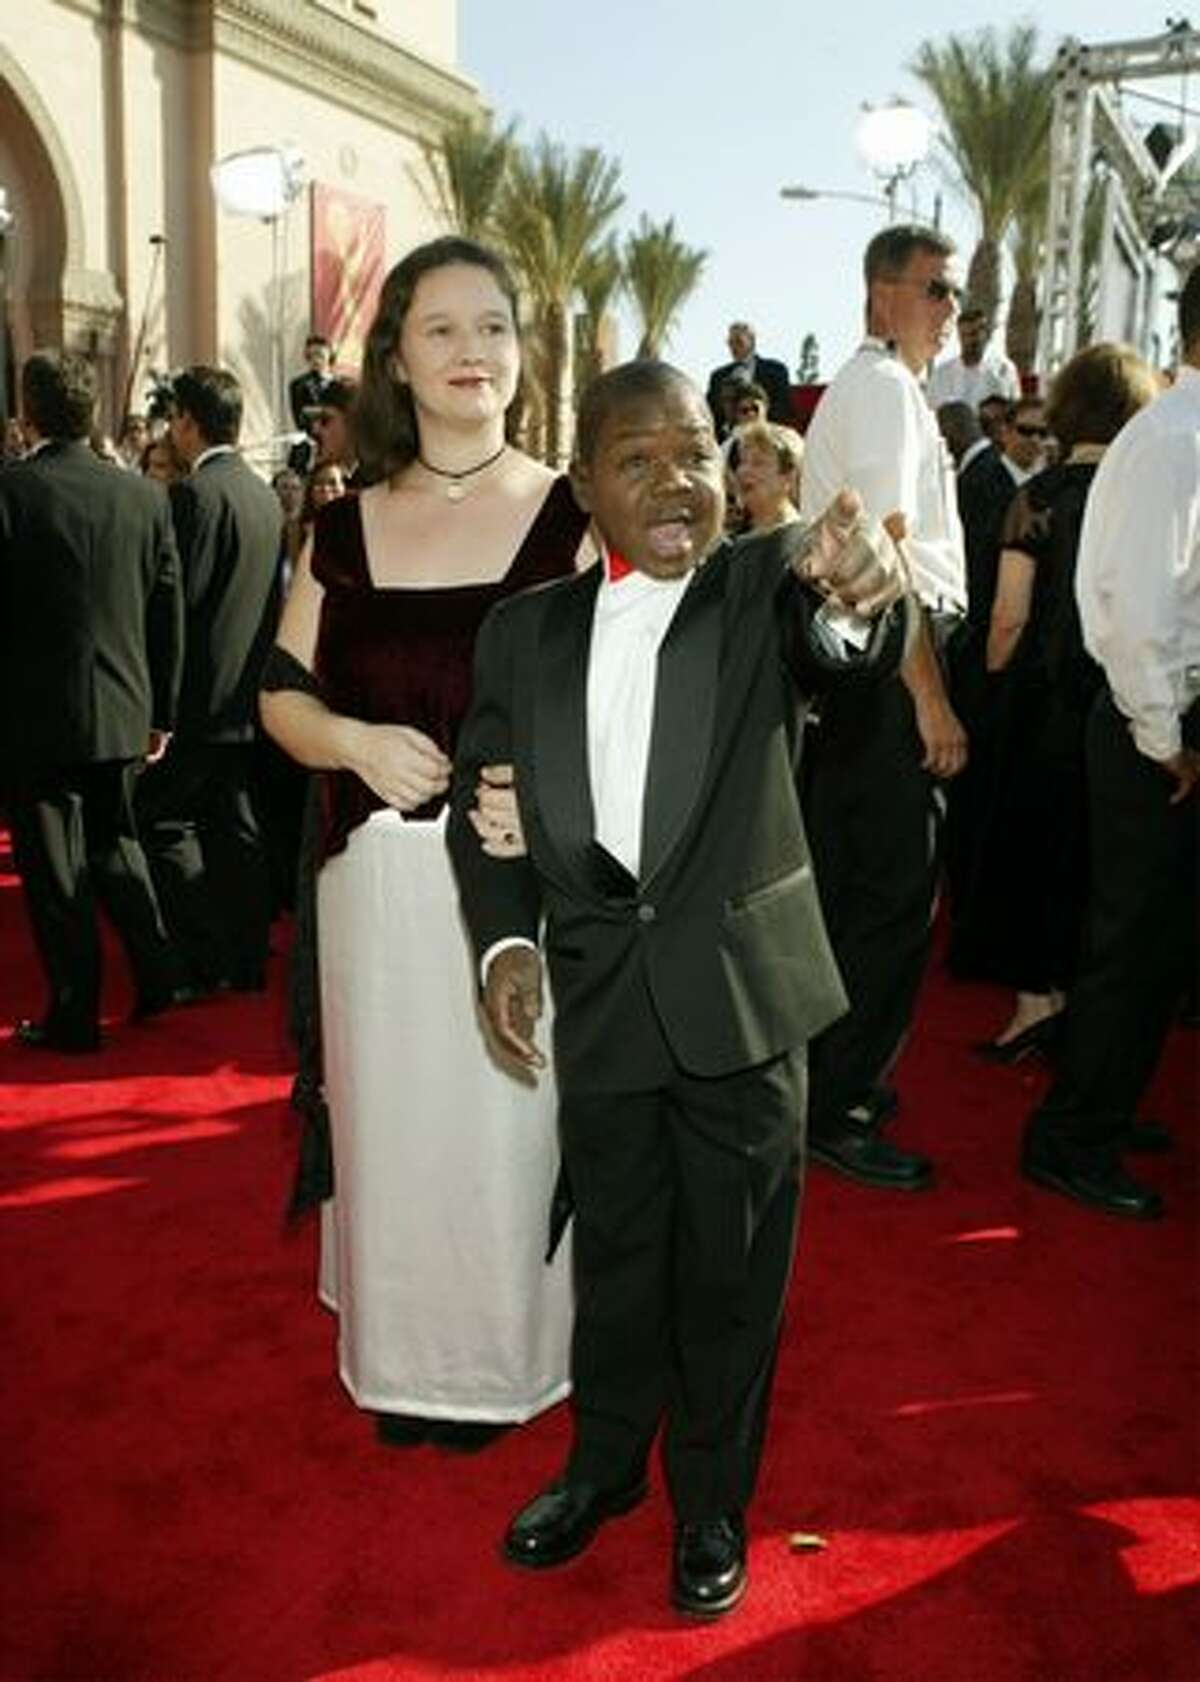 Actor Gary Coleman and guest attend the 55th Annual Primetime Emmy Awards at the Shrine Auditorium on Sept. 21, 2003, in Los Angeles.